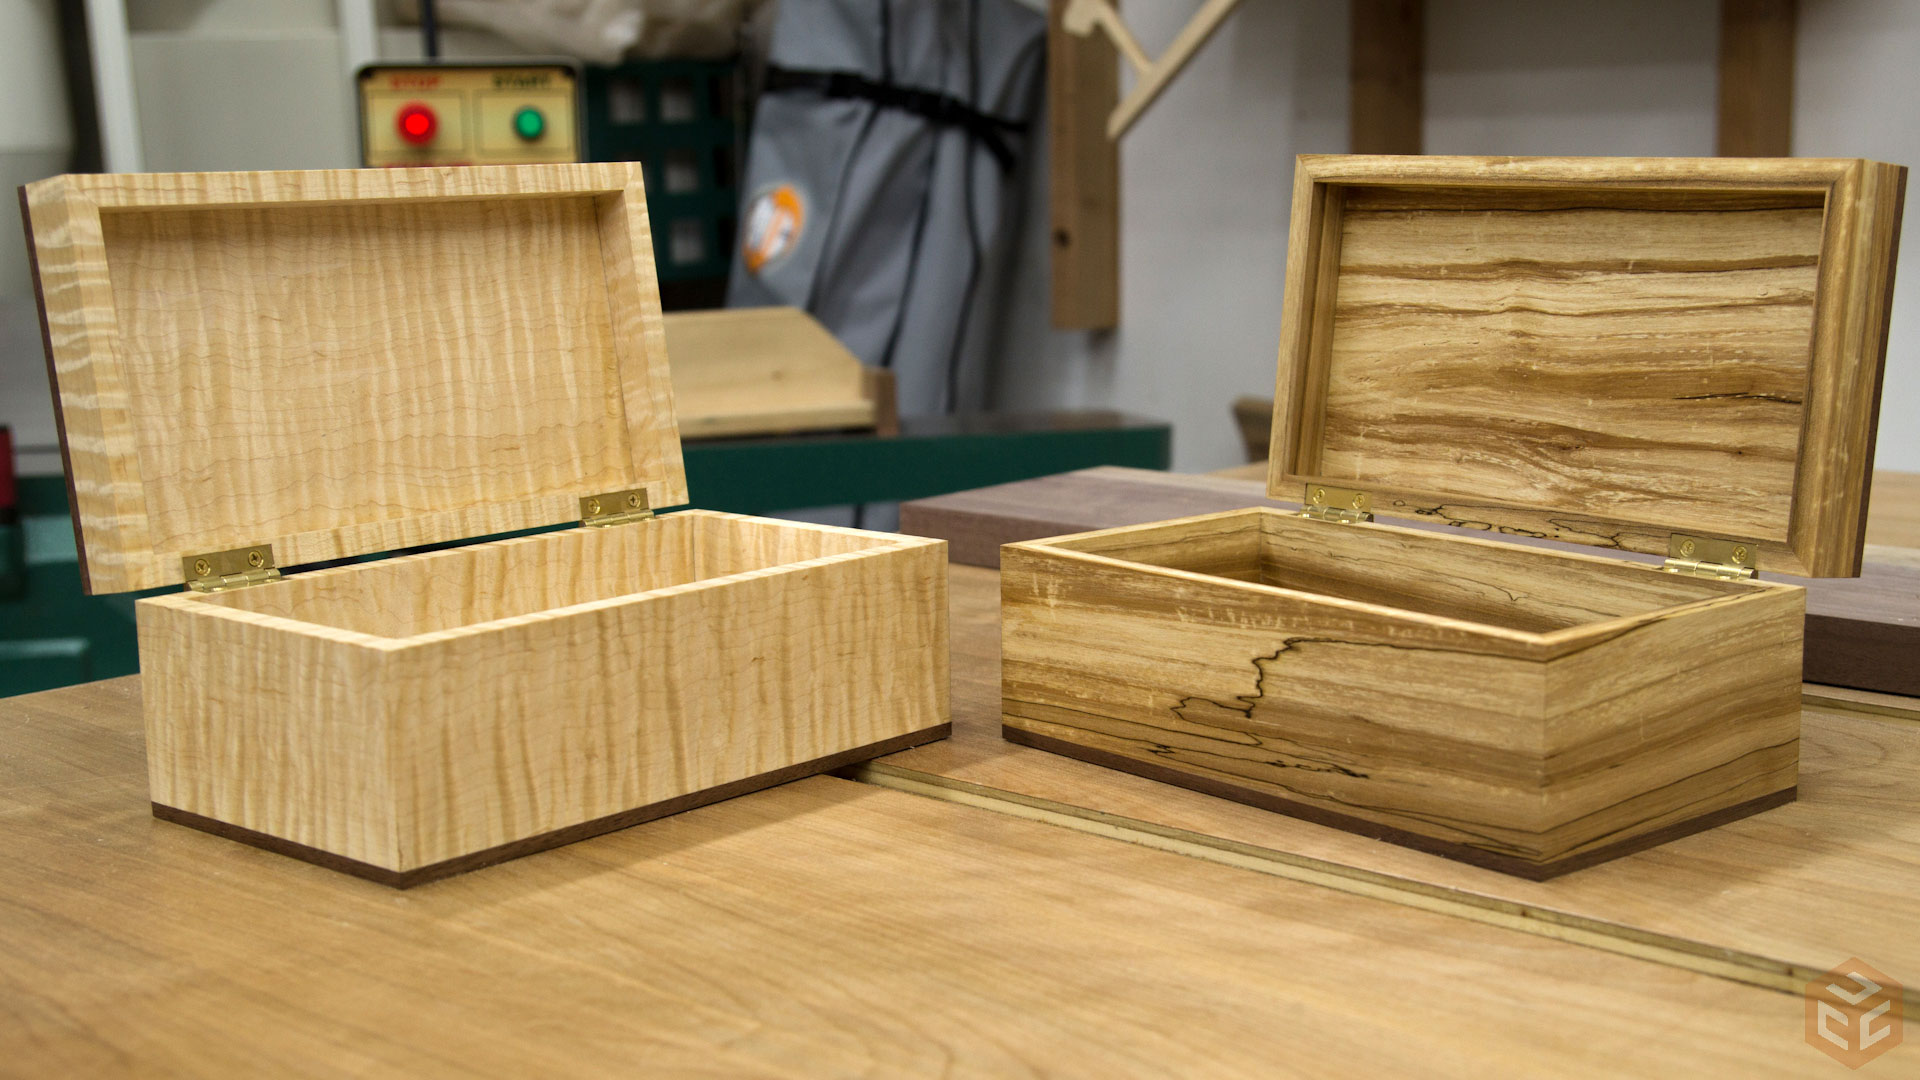 Kisten Aus Holz How To Make A Wooden Box Jays Custom Creations